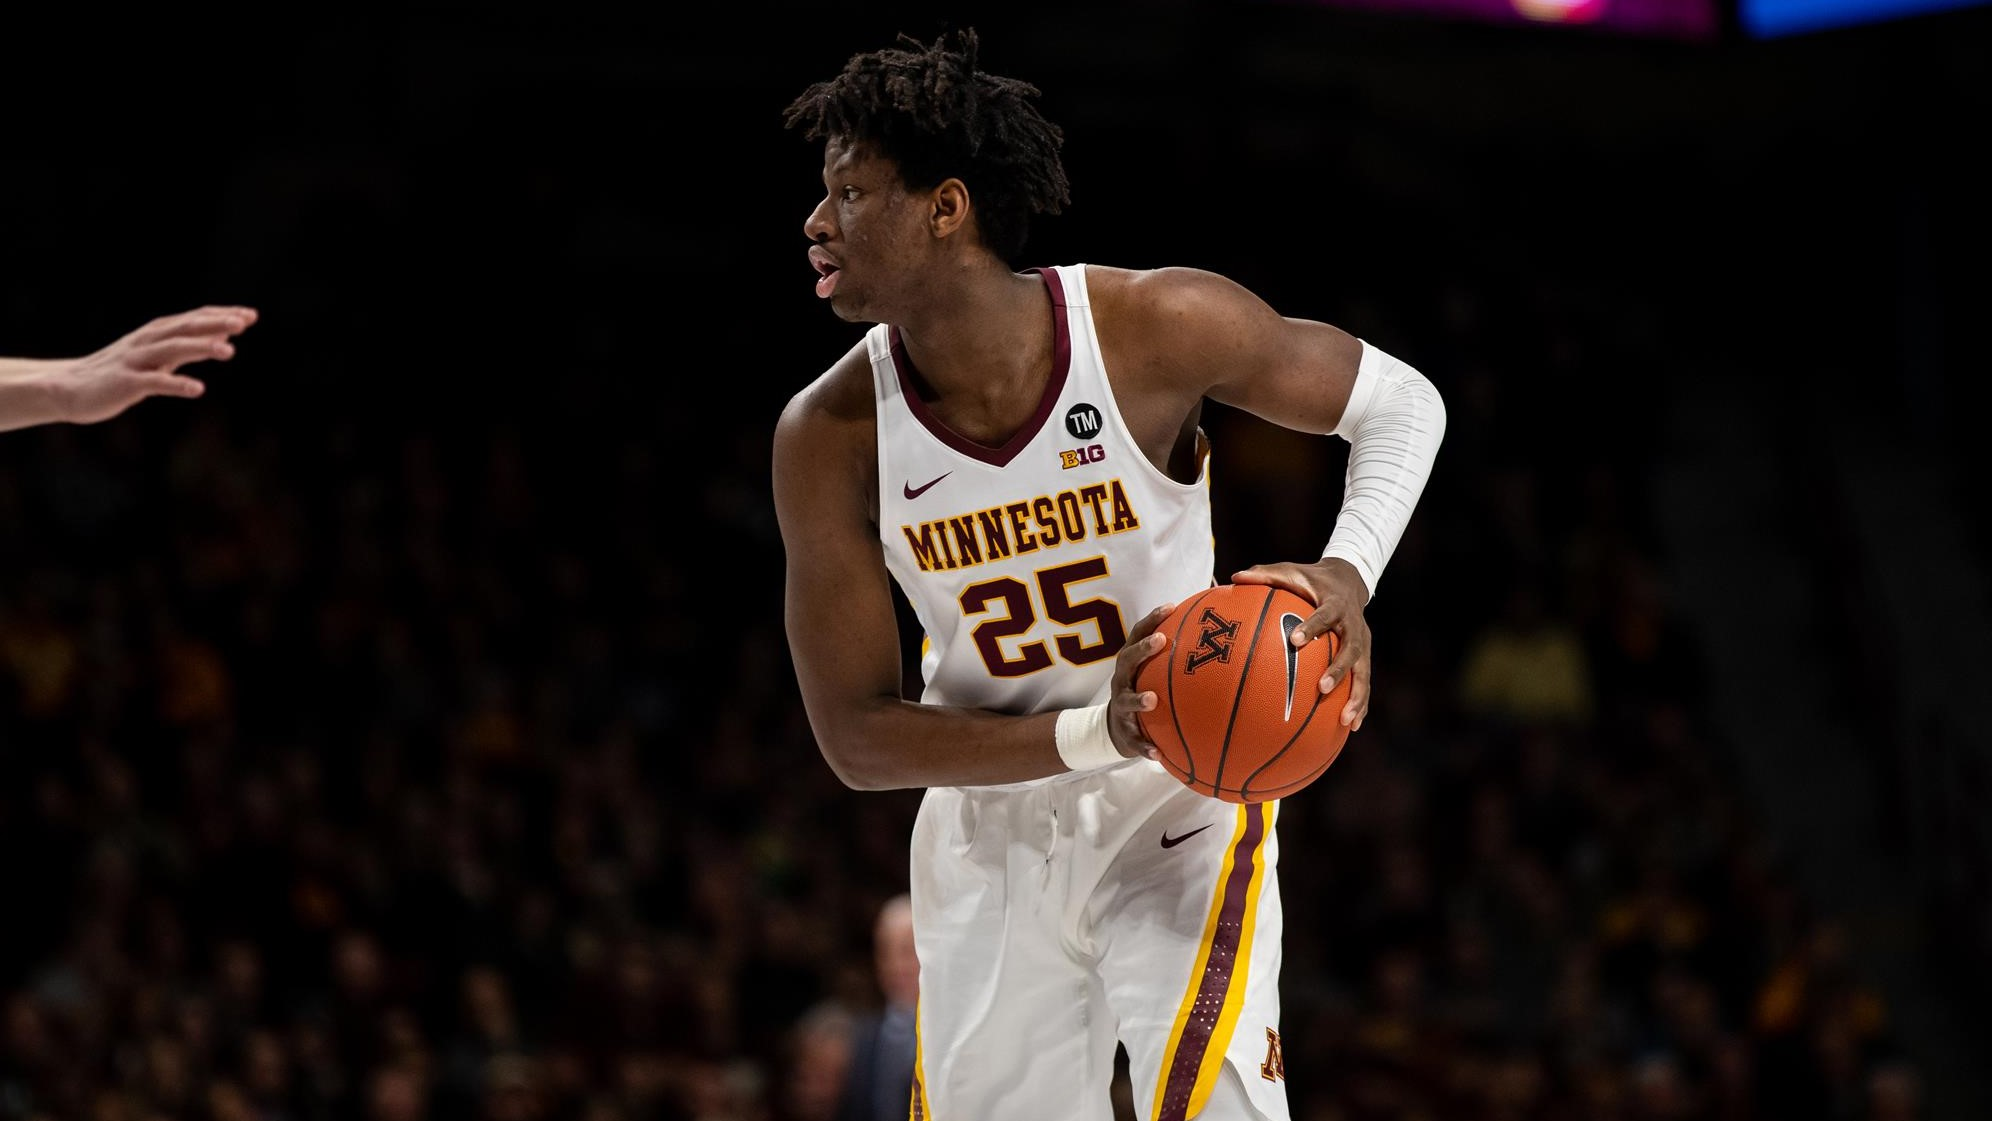 Q&A with Daniel Oturu - University of Minnesota Athletics